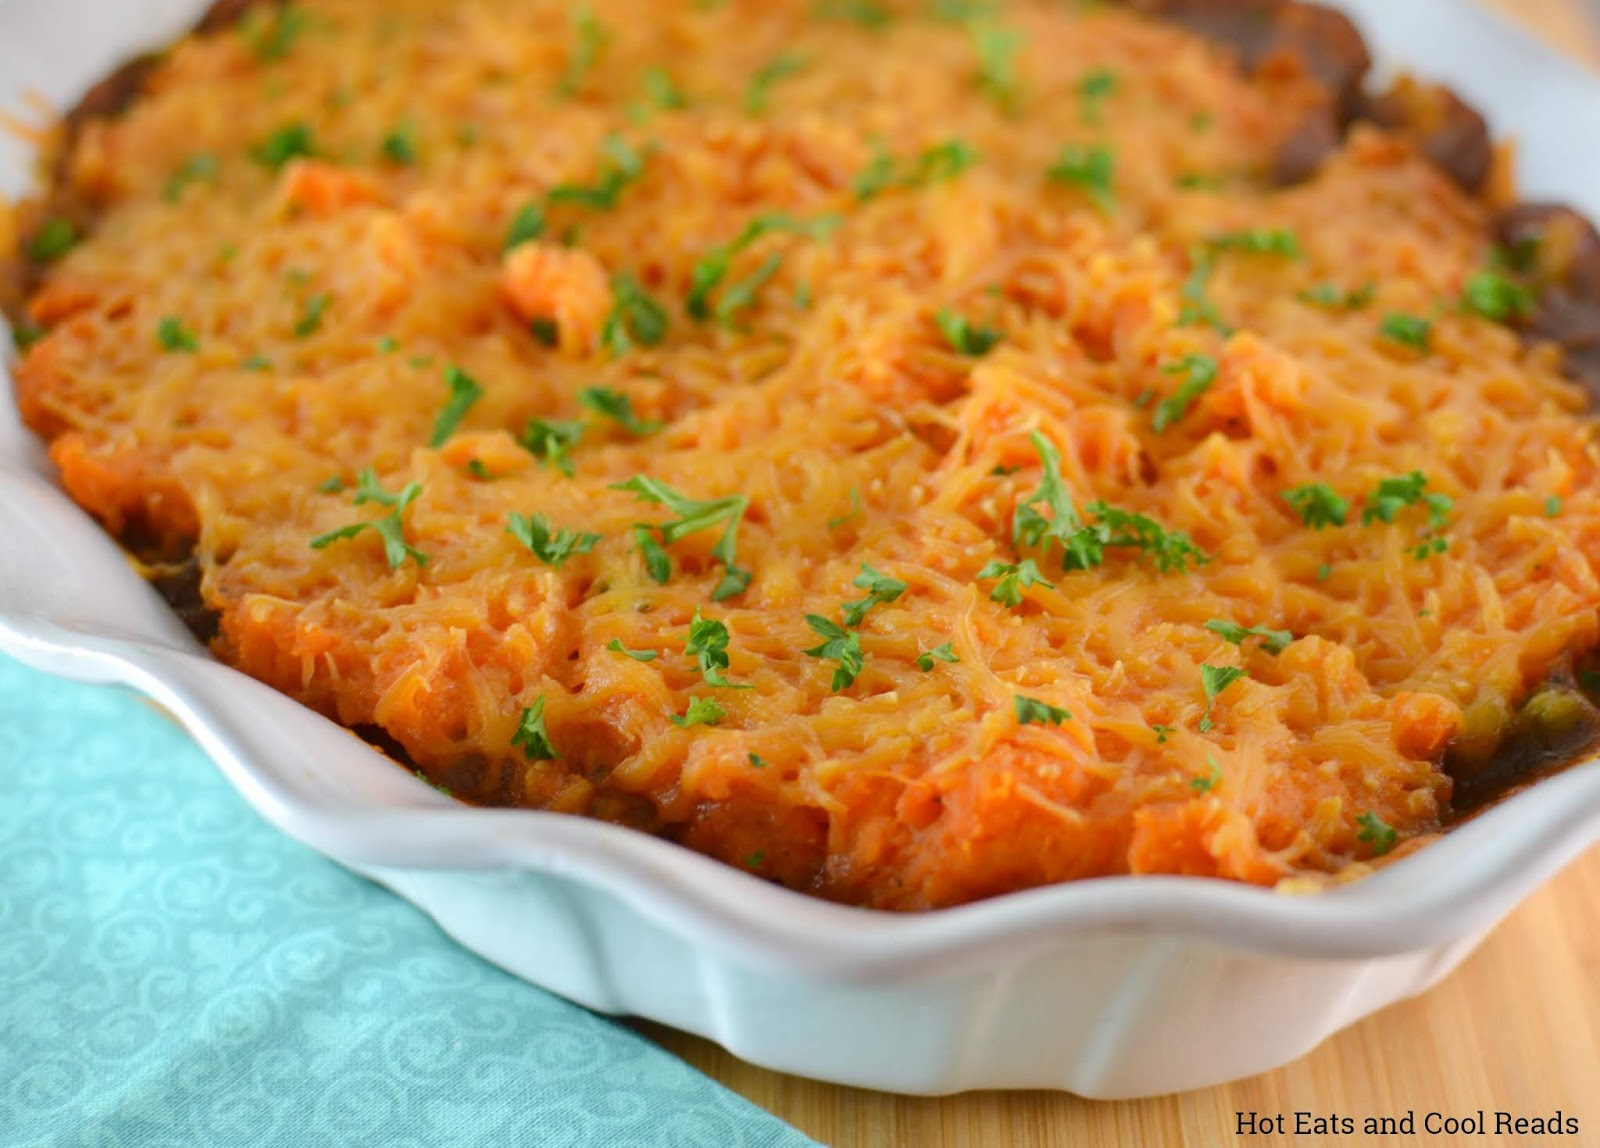 Sweet Potato Beefy Shepard's Pie Recipe from Hot Eats and Cool Reads! This comfort food casserole is perfect for dinner! Topped with delicious mashed sweet potatoes and packed with delicious ground beef and vegetables!